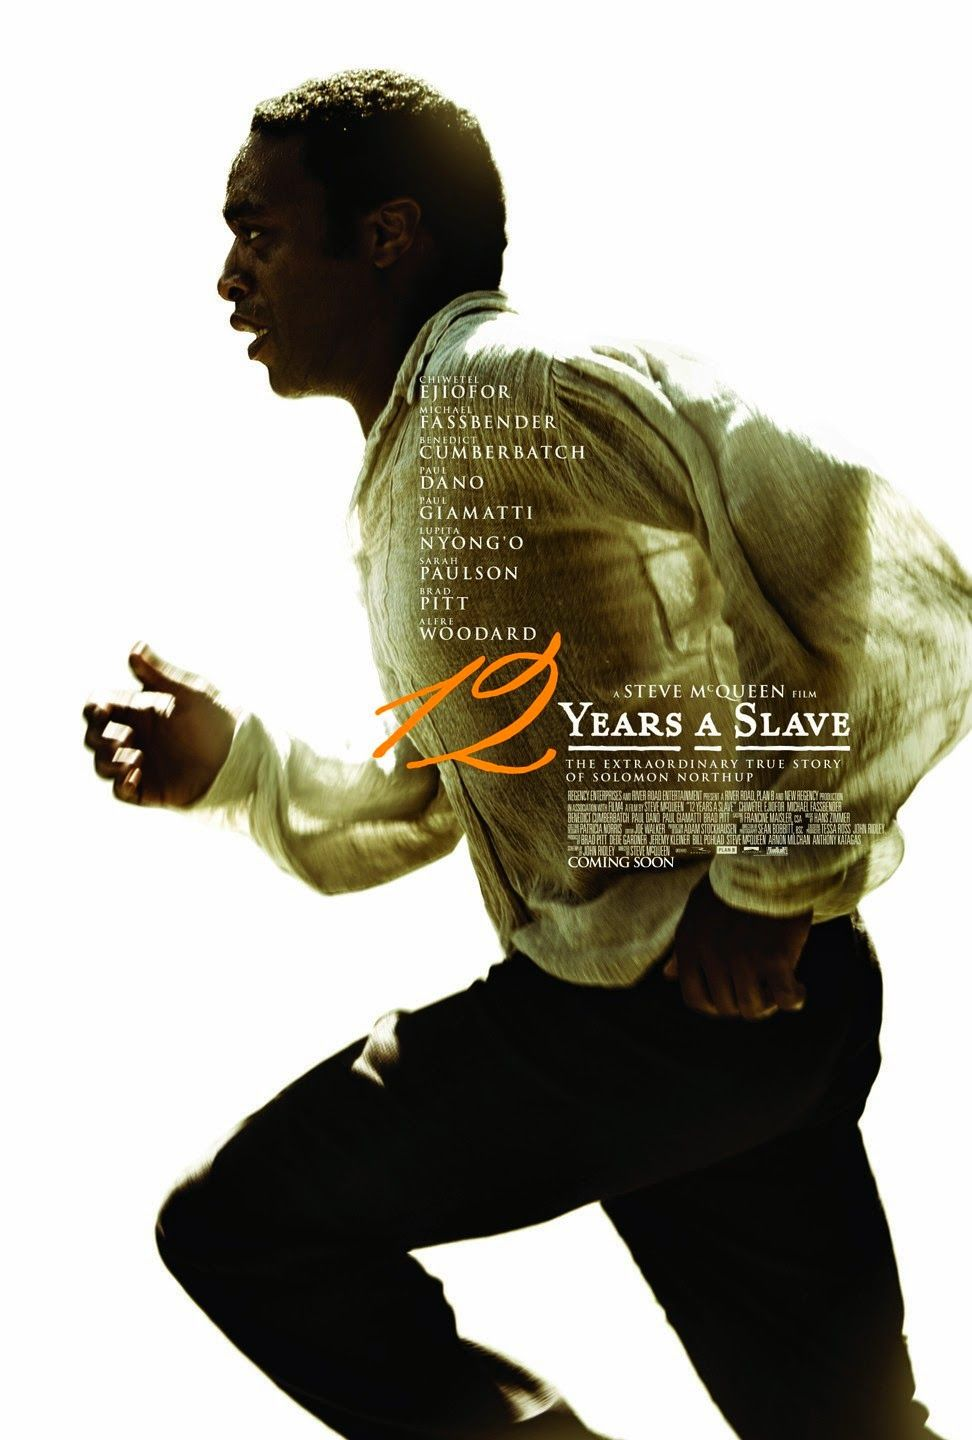 Pin on 12 Years A Slave Movie Reviews